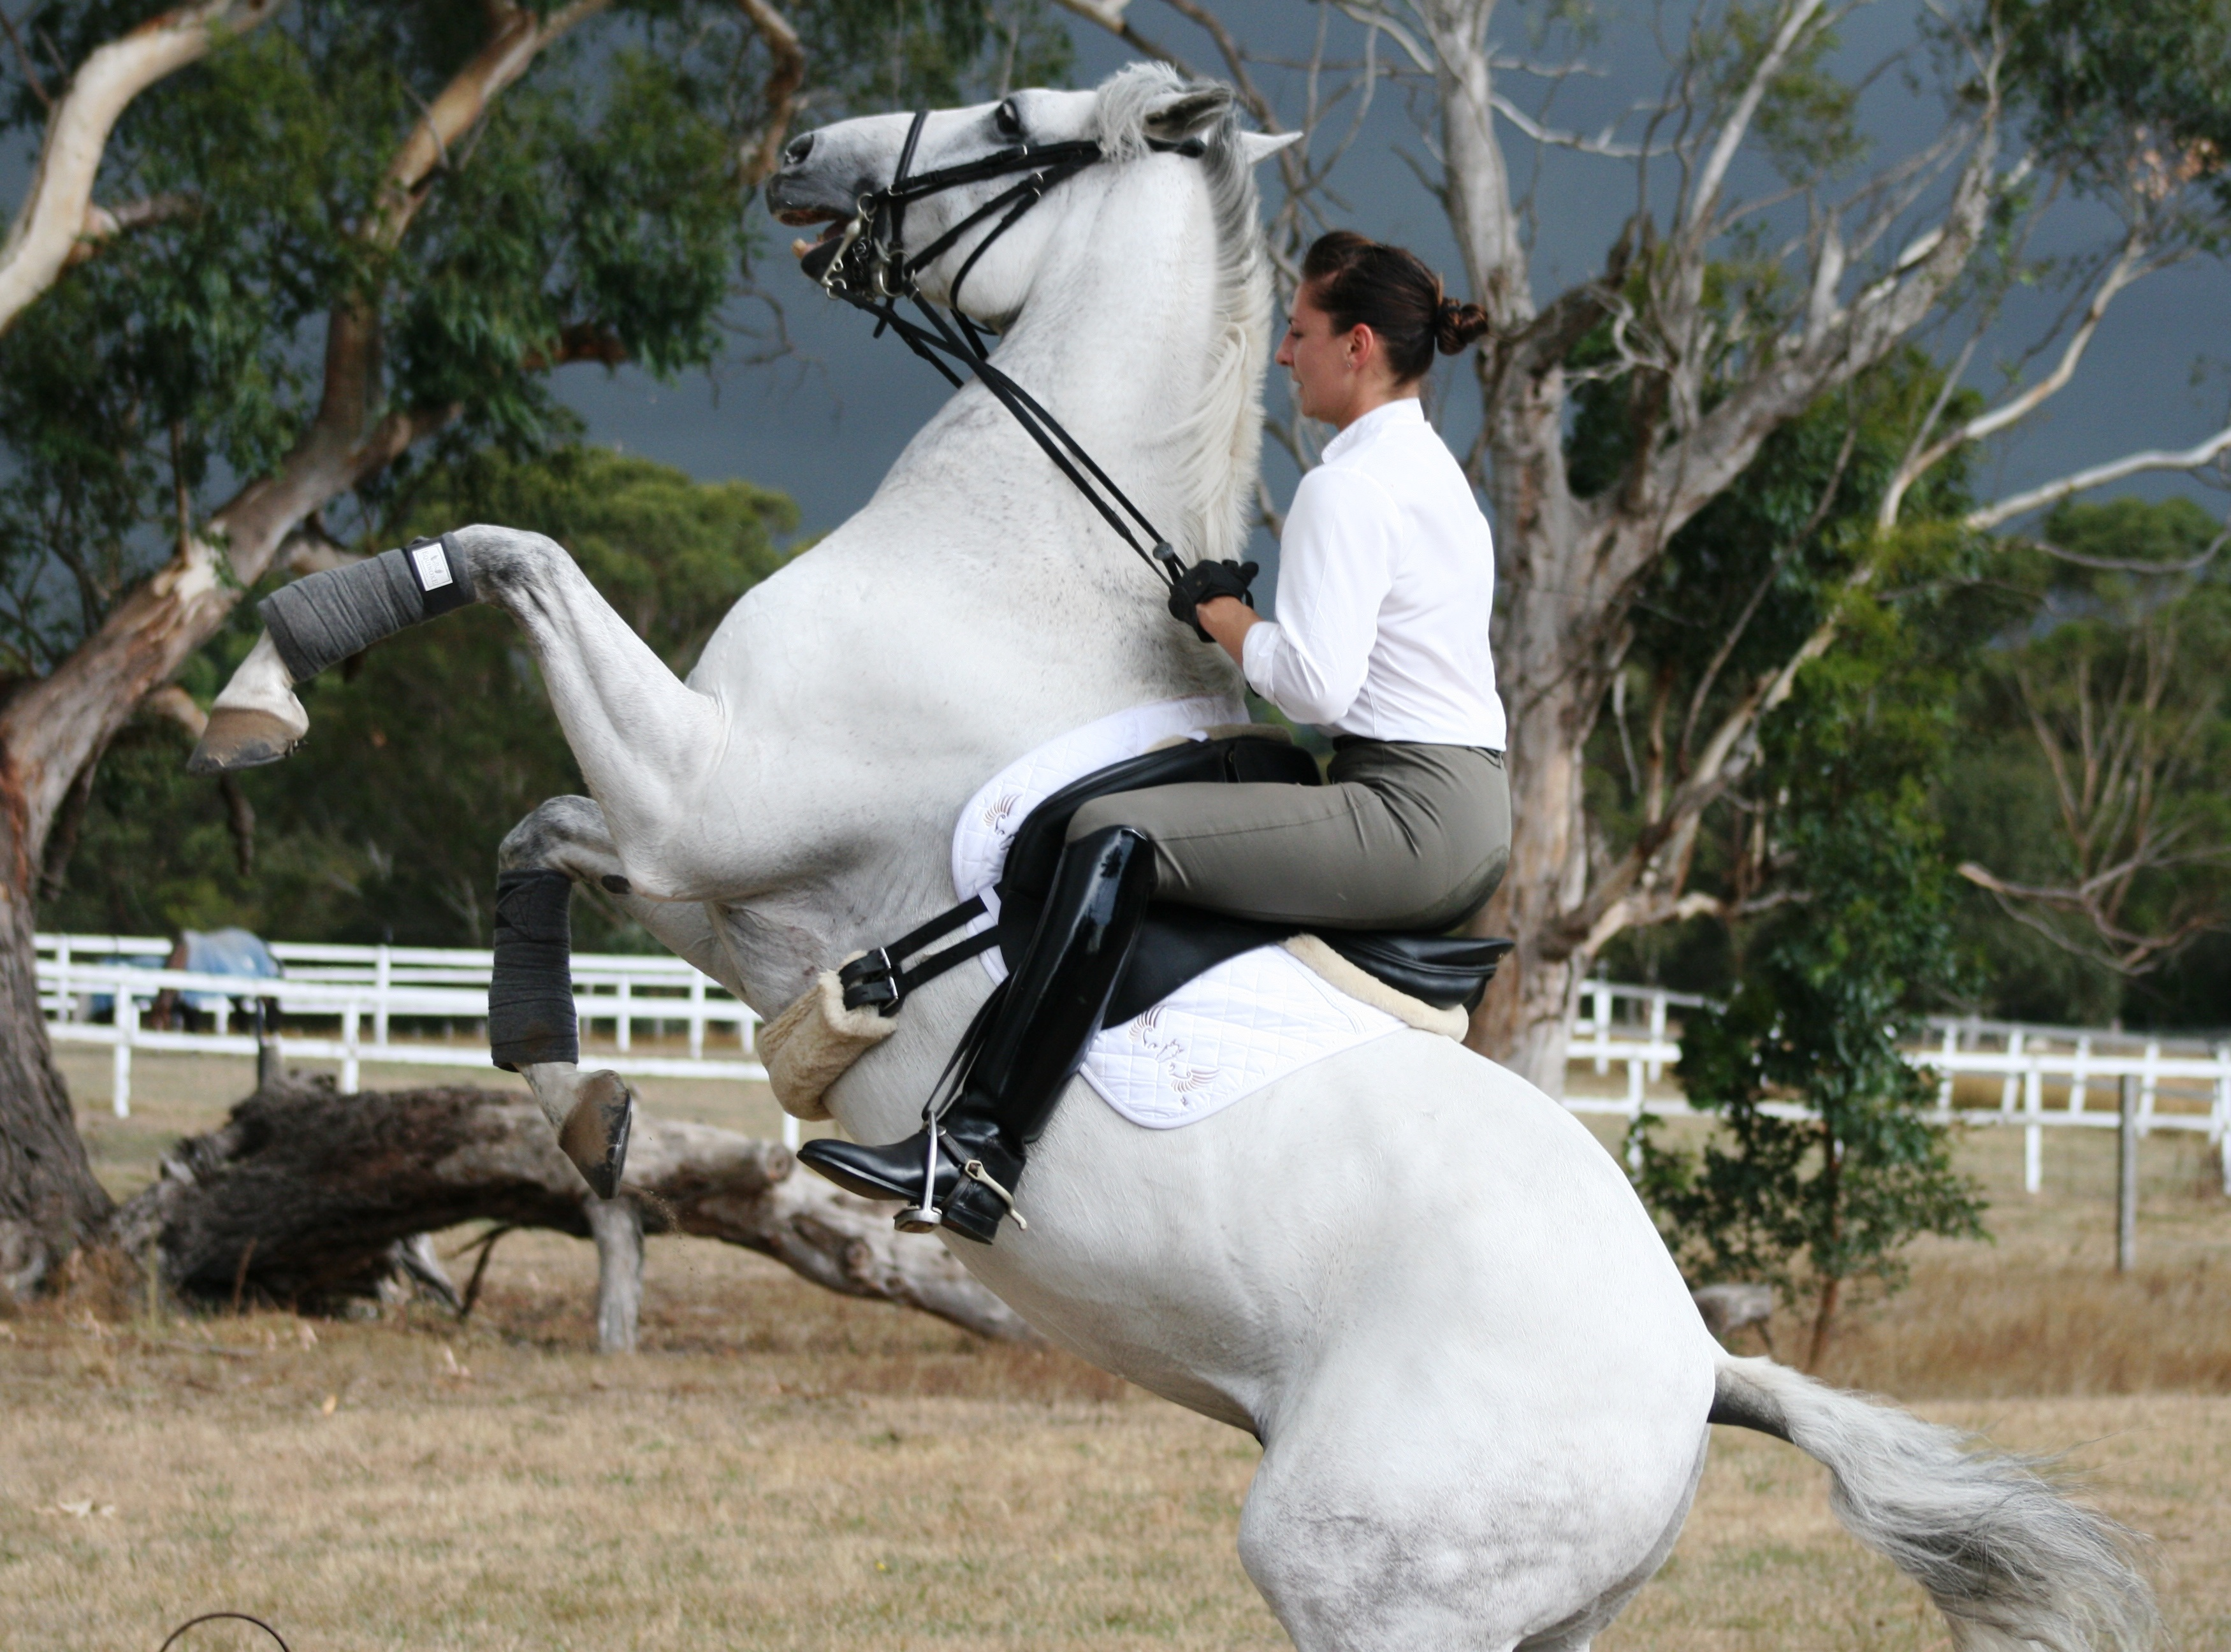 How to Not Fall Off a Horse How to Not Fall Off a Horse new picture